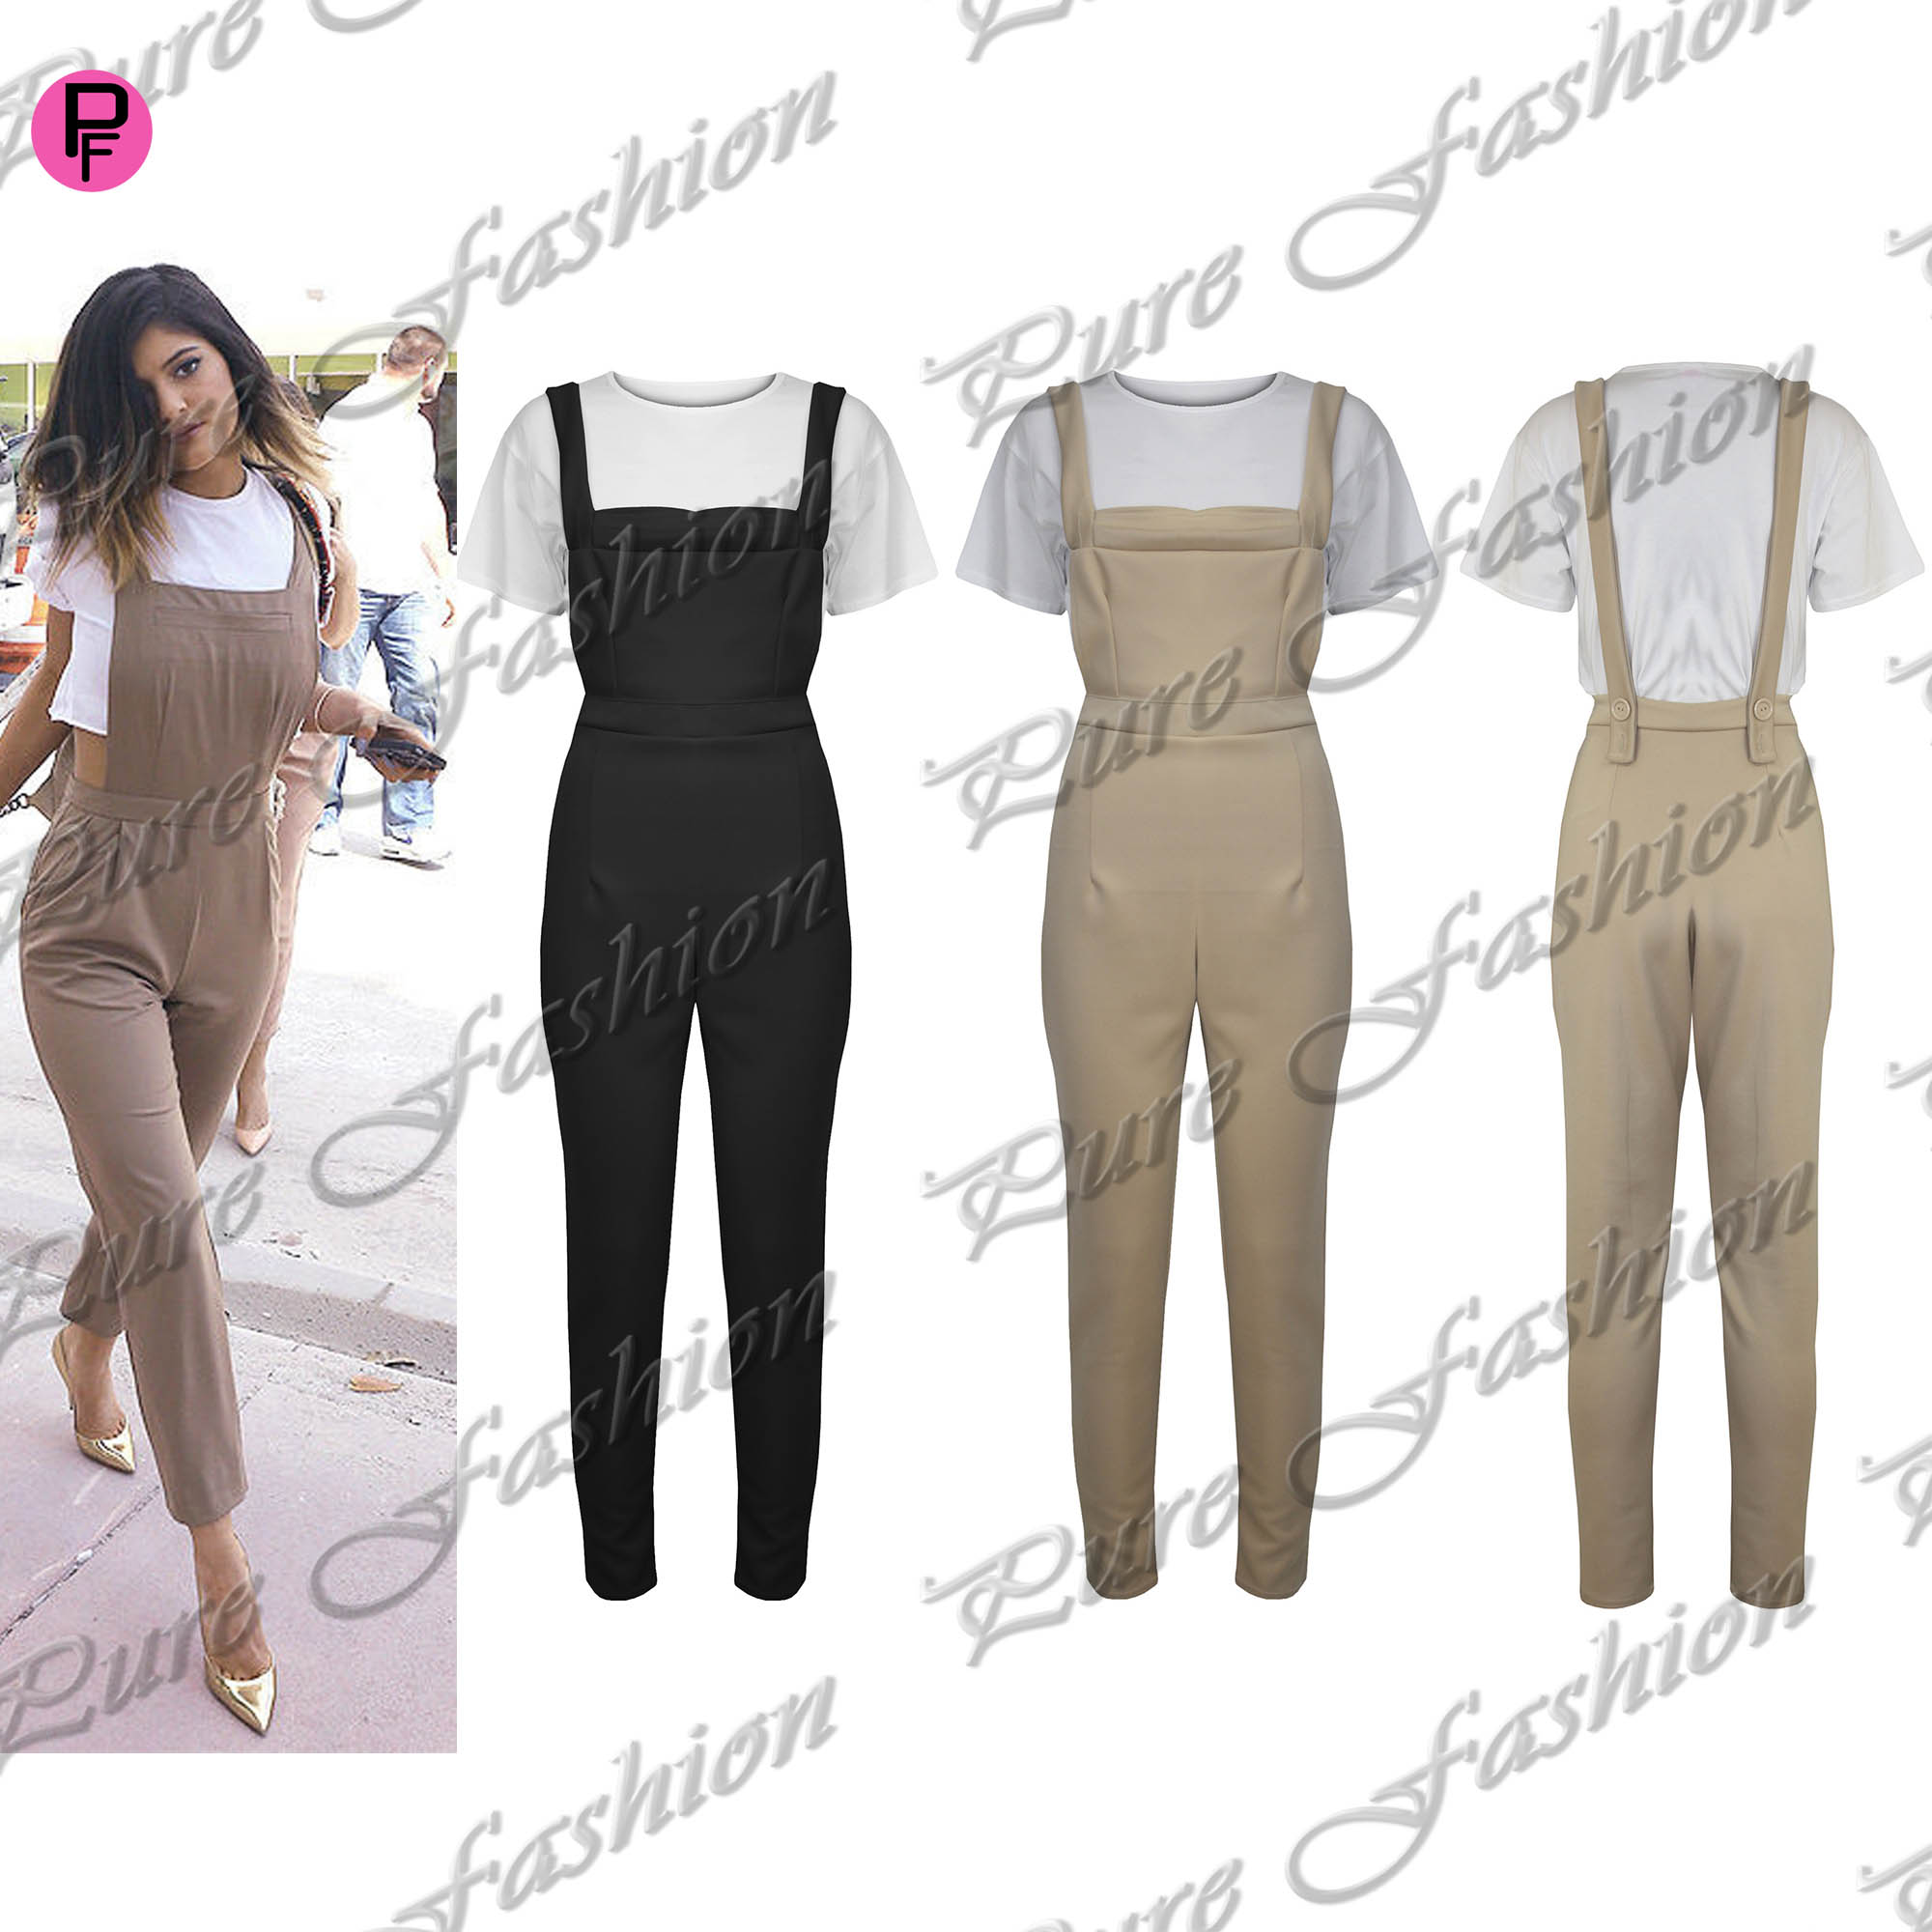 Women Celebrity Dungaree Pinafore Crop Top Celeb Set Jumpsuit Playsuit | eBay